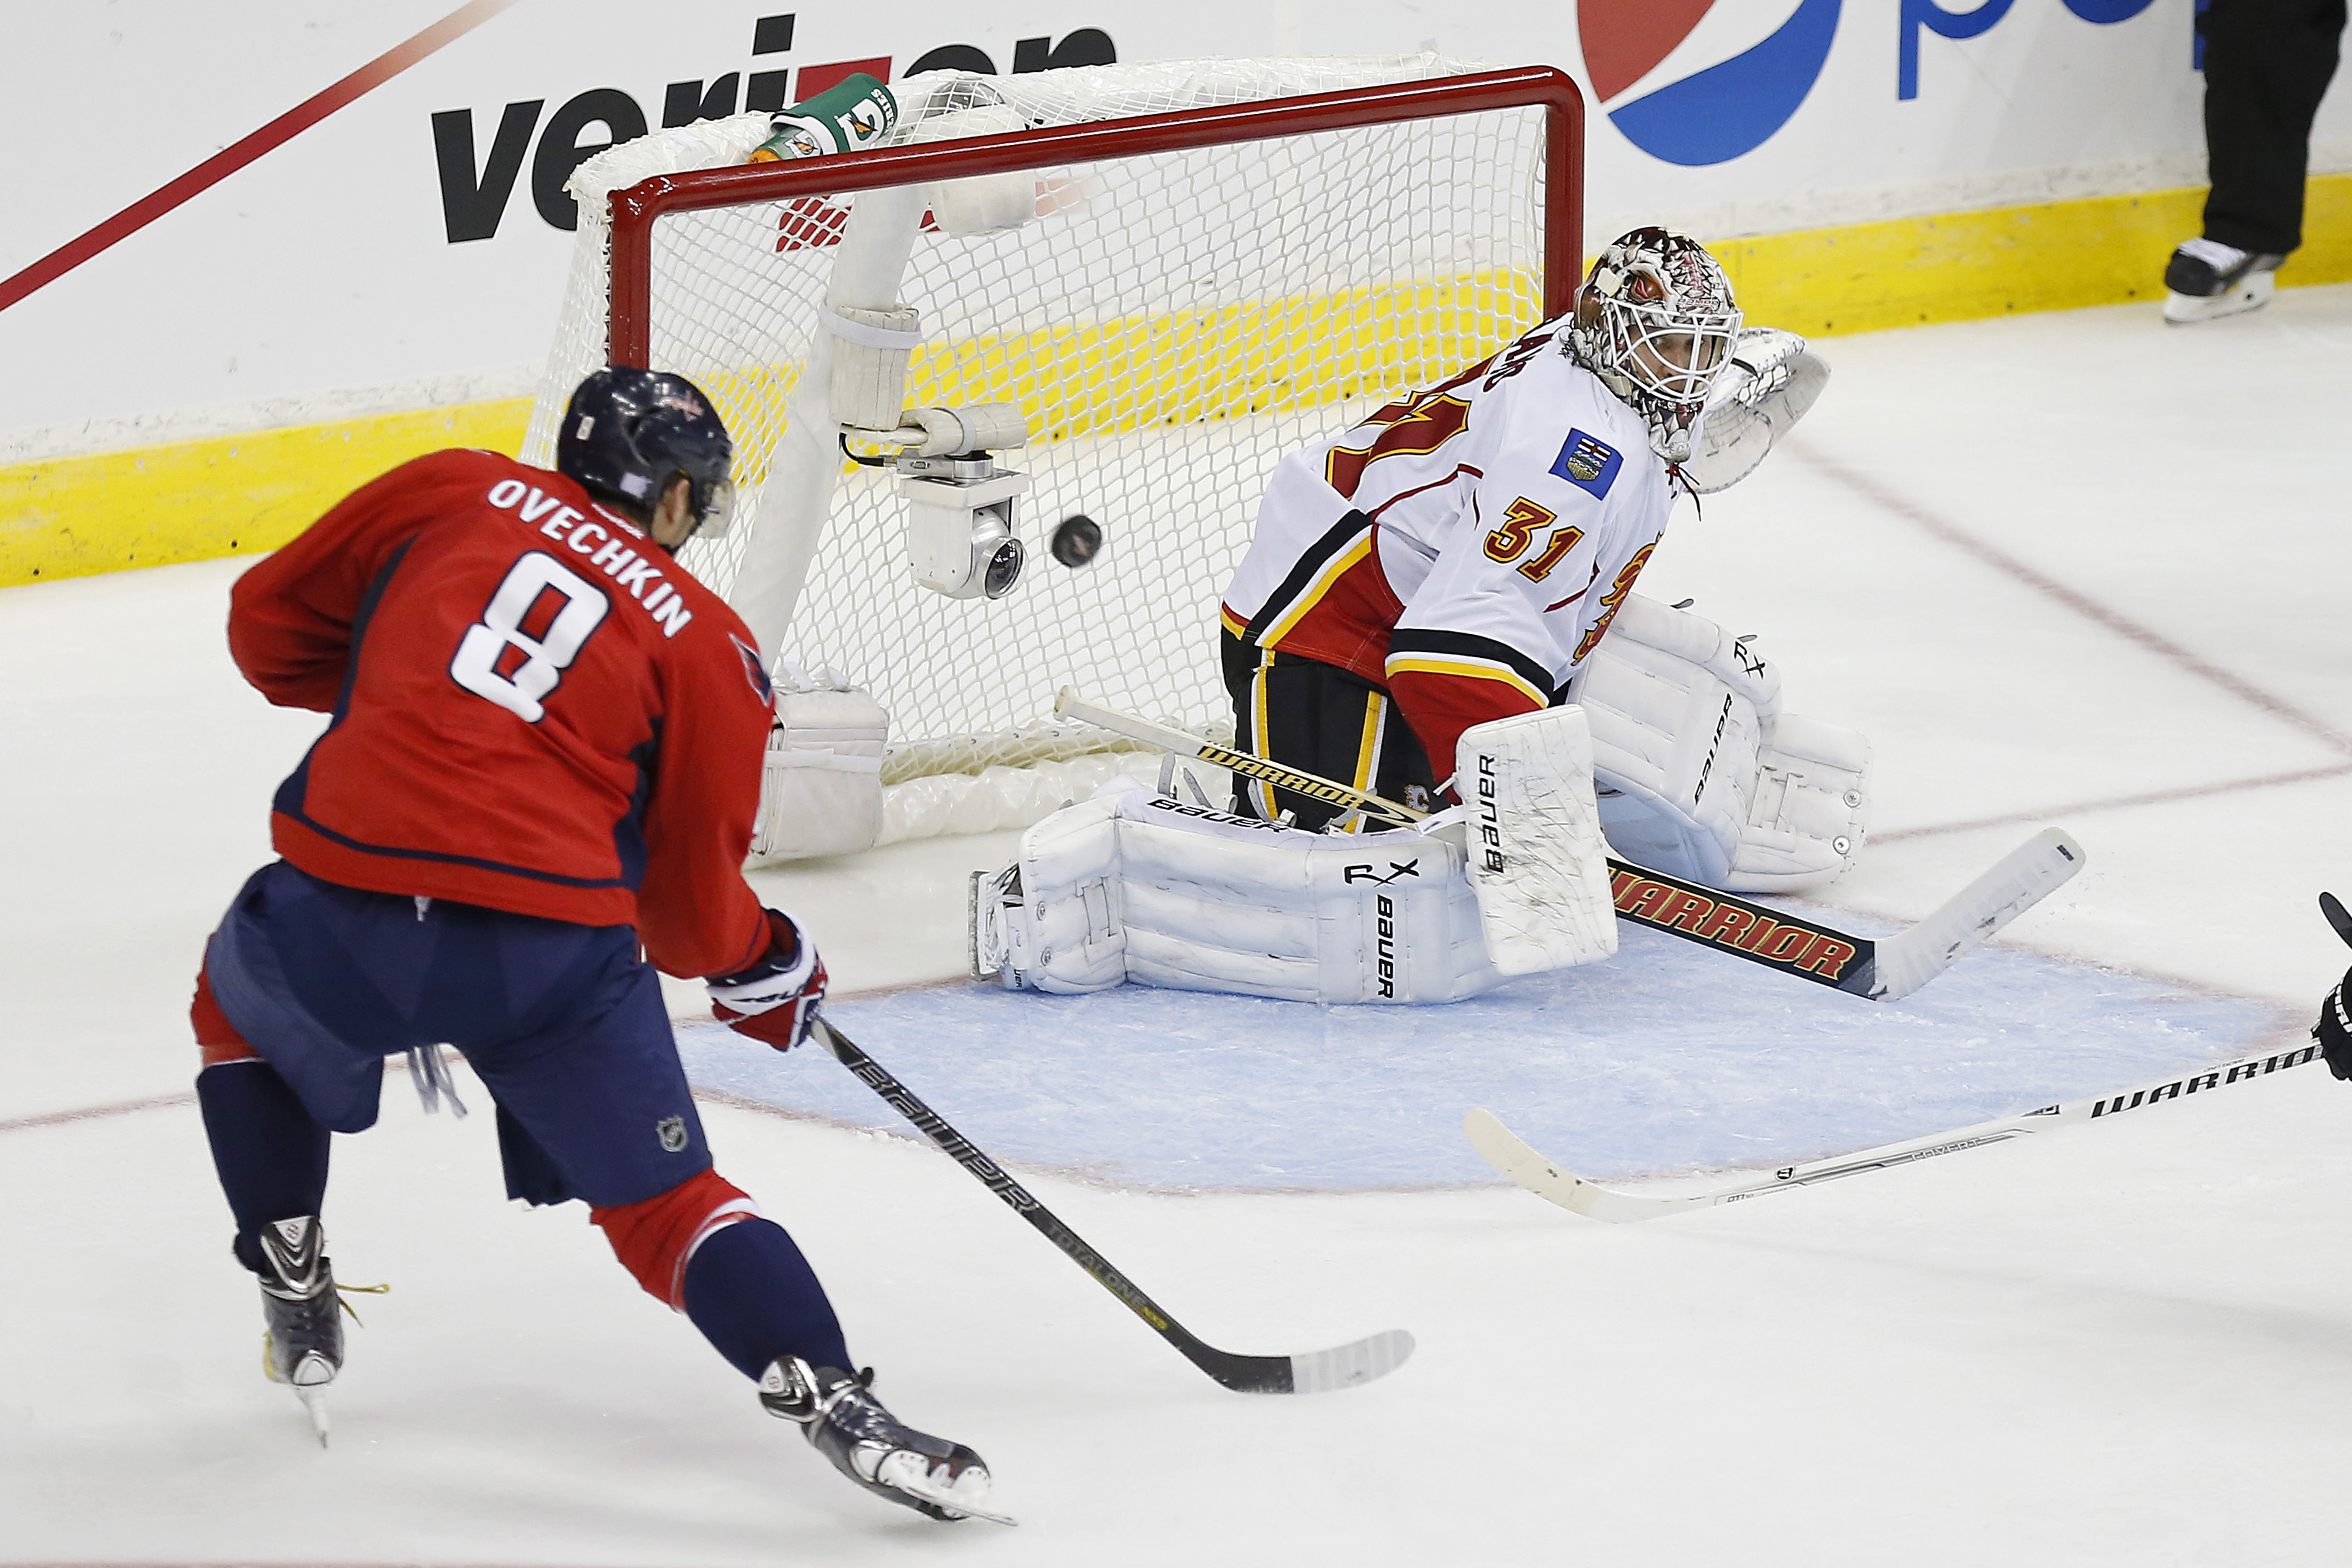 fb52634b825 Calgary Flames  Why Trading for Alexander Ovechkin Makes Sense